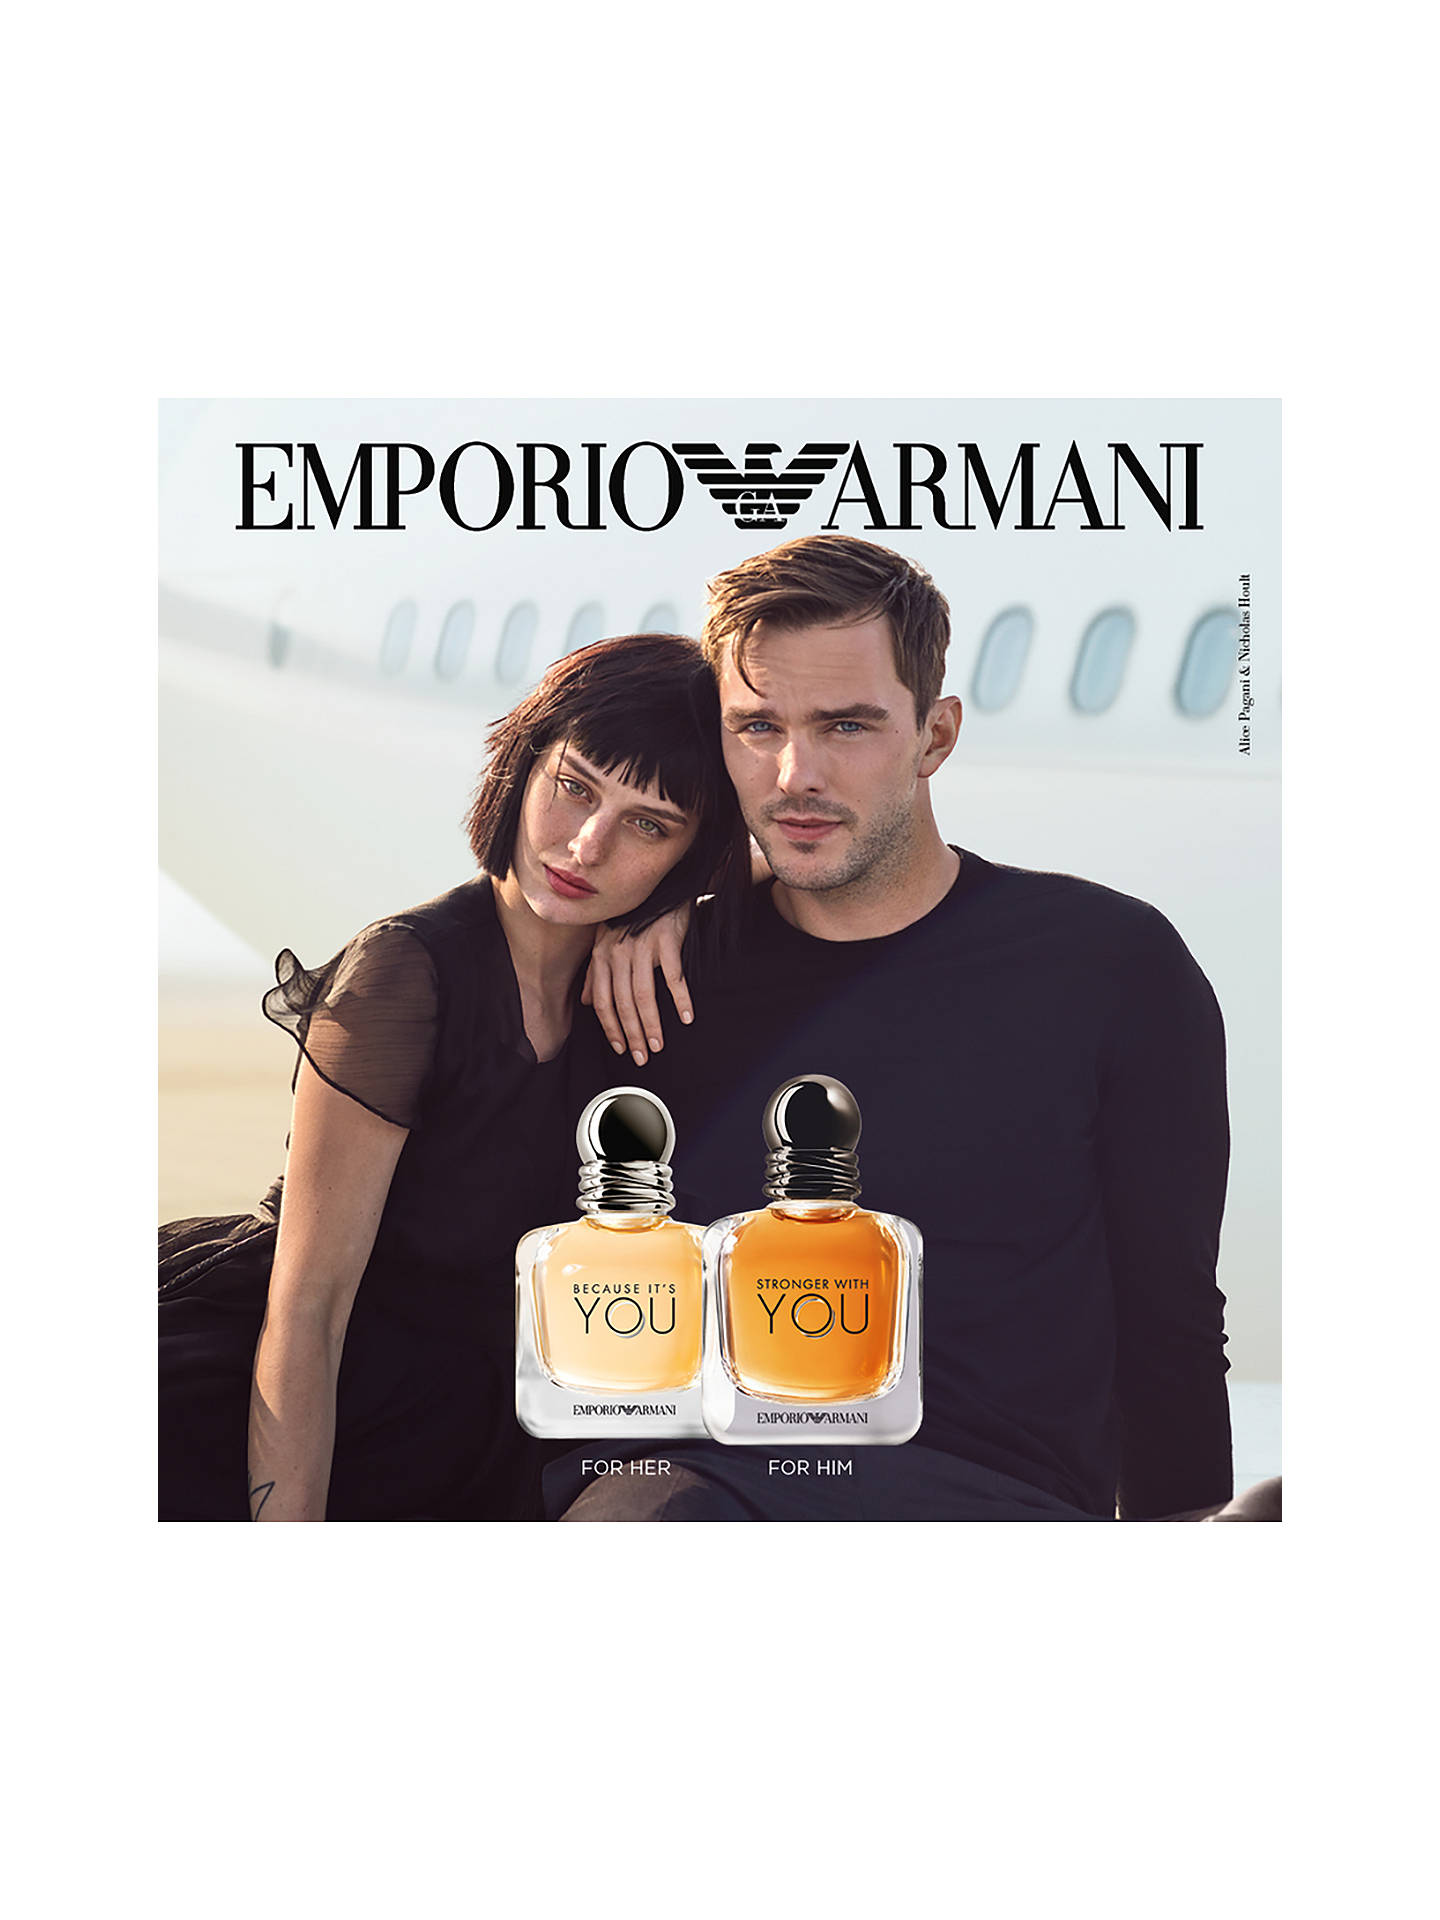 Lewisamp; John At Armani Because You Eau De Parfum It's Partners Emporio pMVqzSU